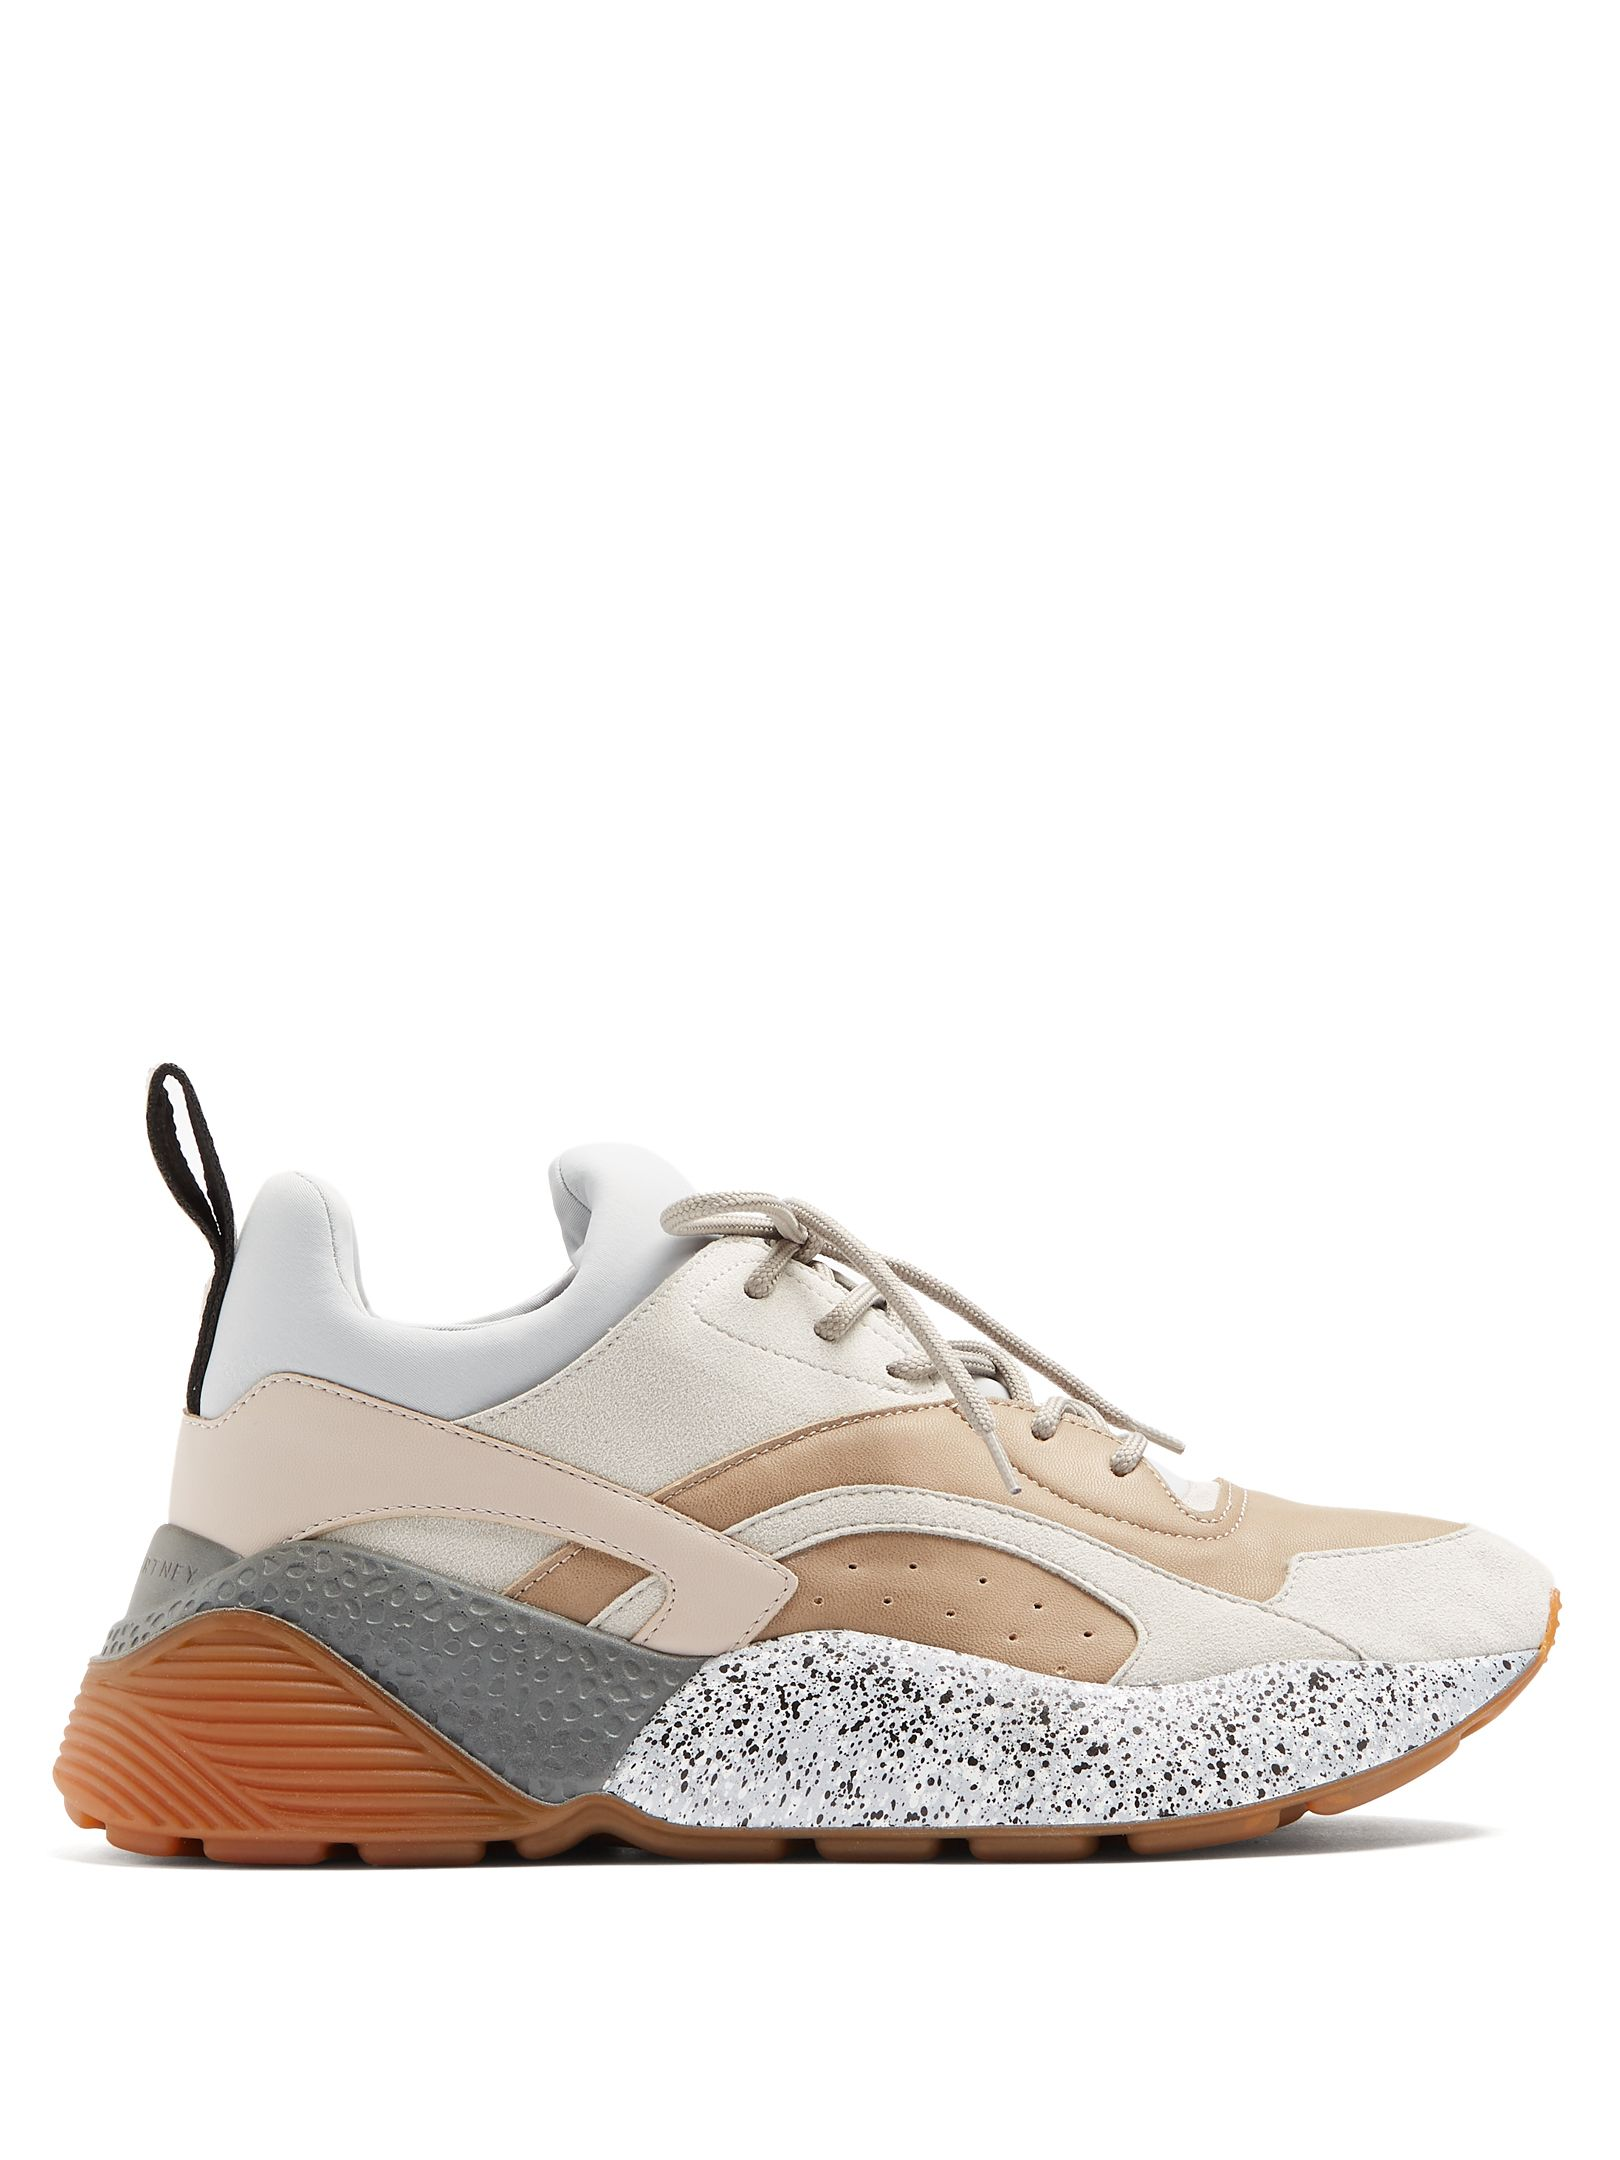 0bcaa96ad2fa01 STELLA MCCARTNEY ECLIPSE CHUNKY-SOLE FAUX-LEATHER TRAINERS.  stellamccartney   cloth